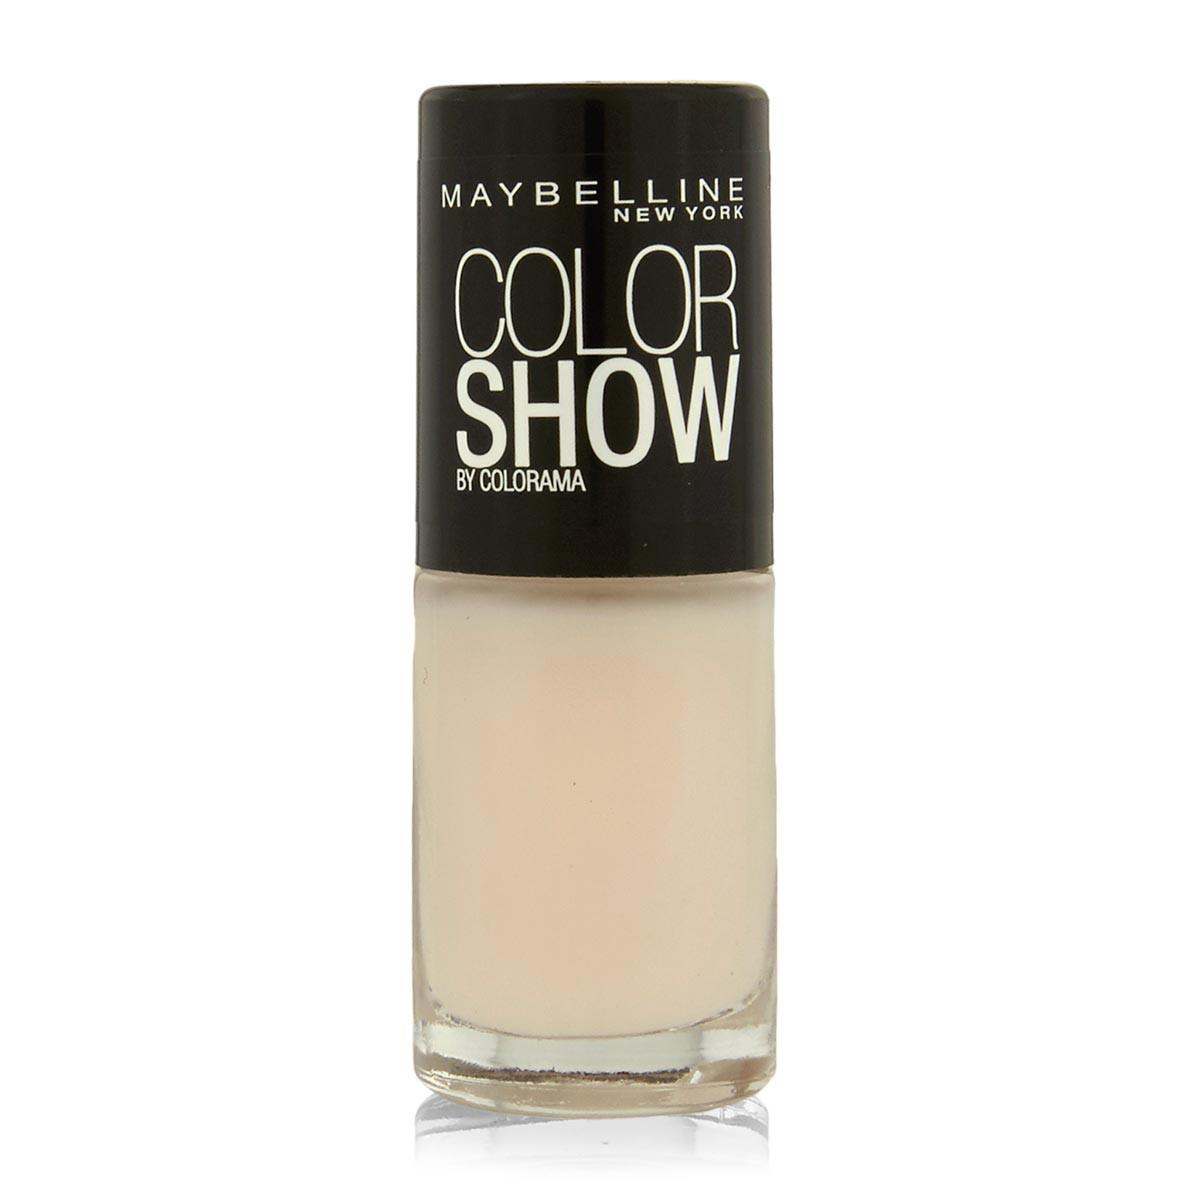 Maybelline Color Show 070 Ballerina